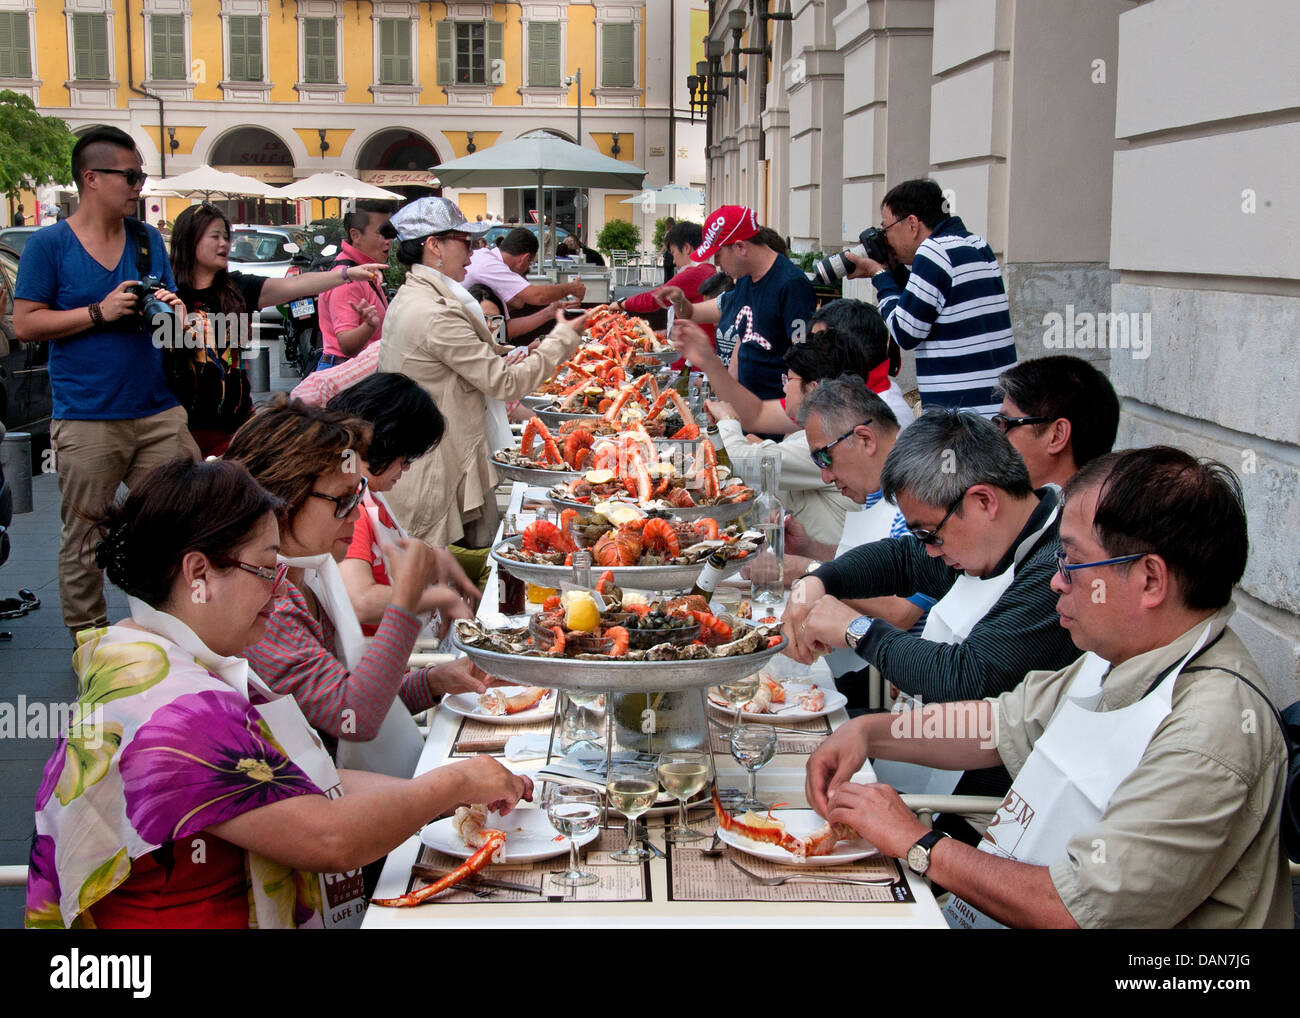 lunch cafe de turin nice france chinese people fruits de mer french stock photo 58244664 alamy. Black Bedroom Furniture Sets. Home Design Ideas